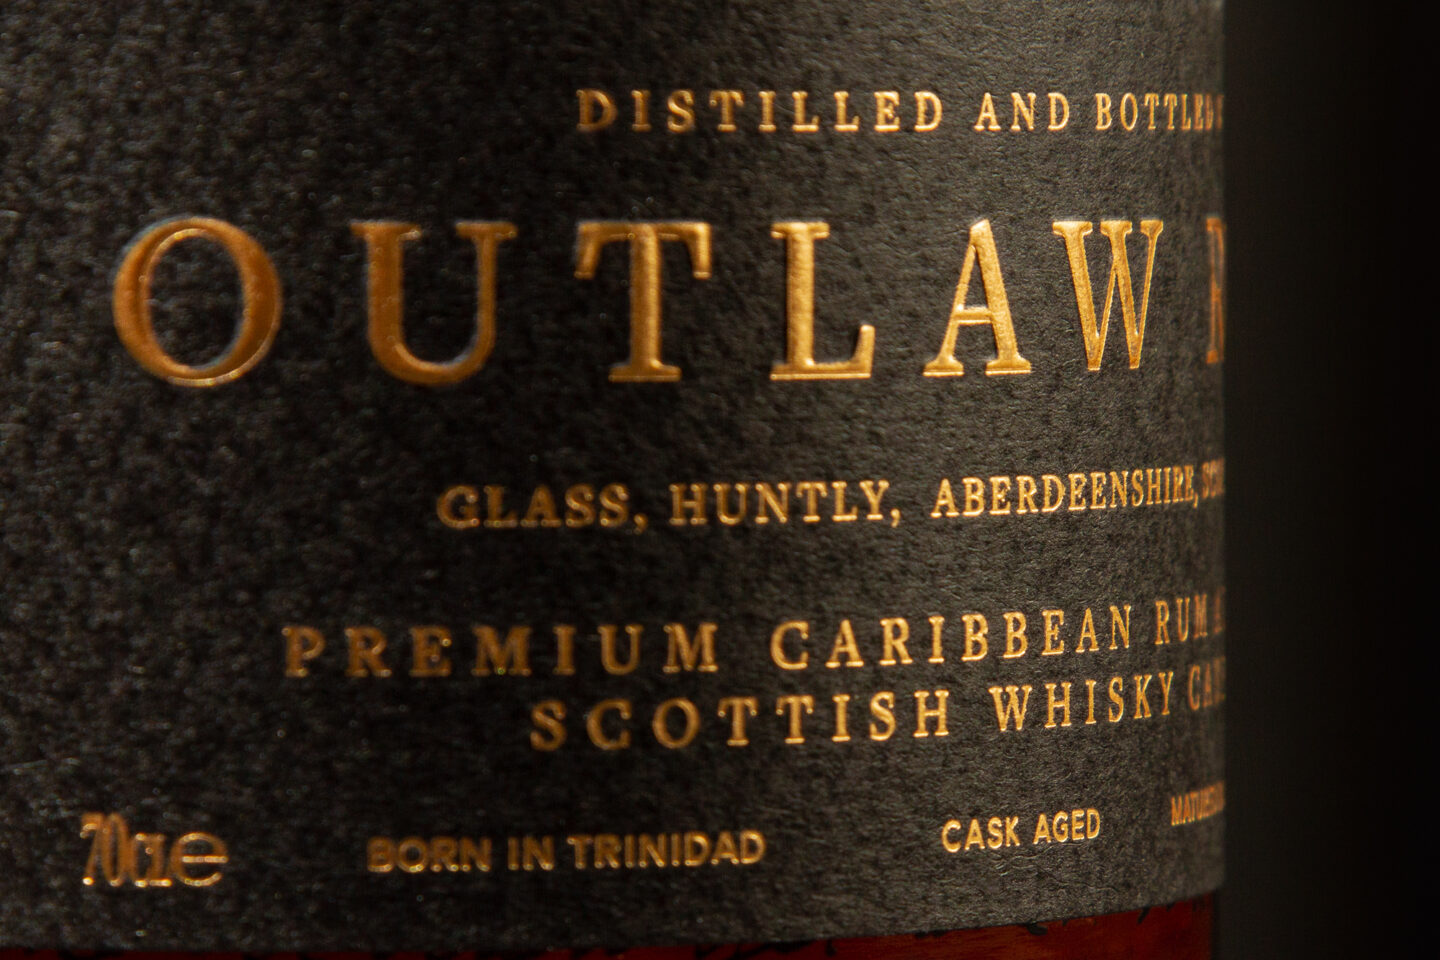 Outlaw OG Bottle Label MACRO 7349